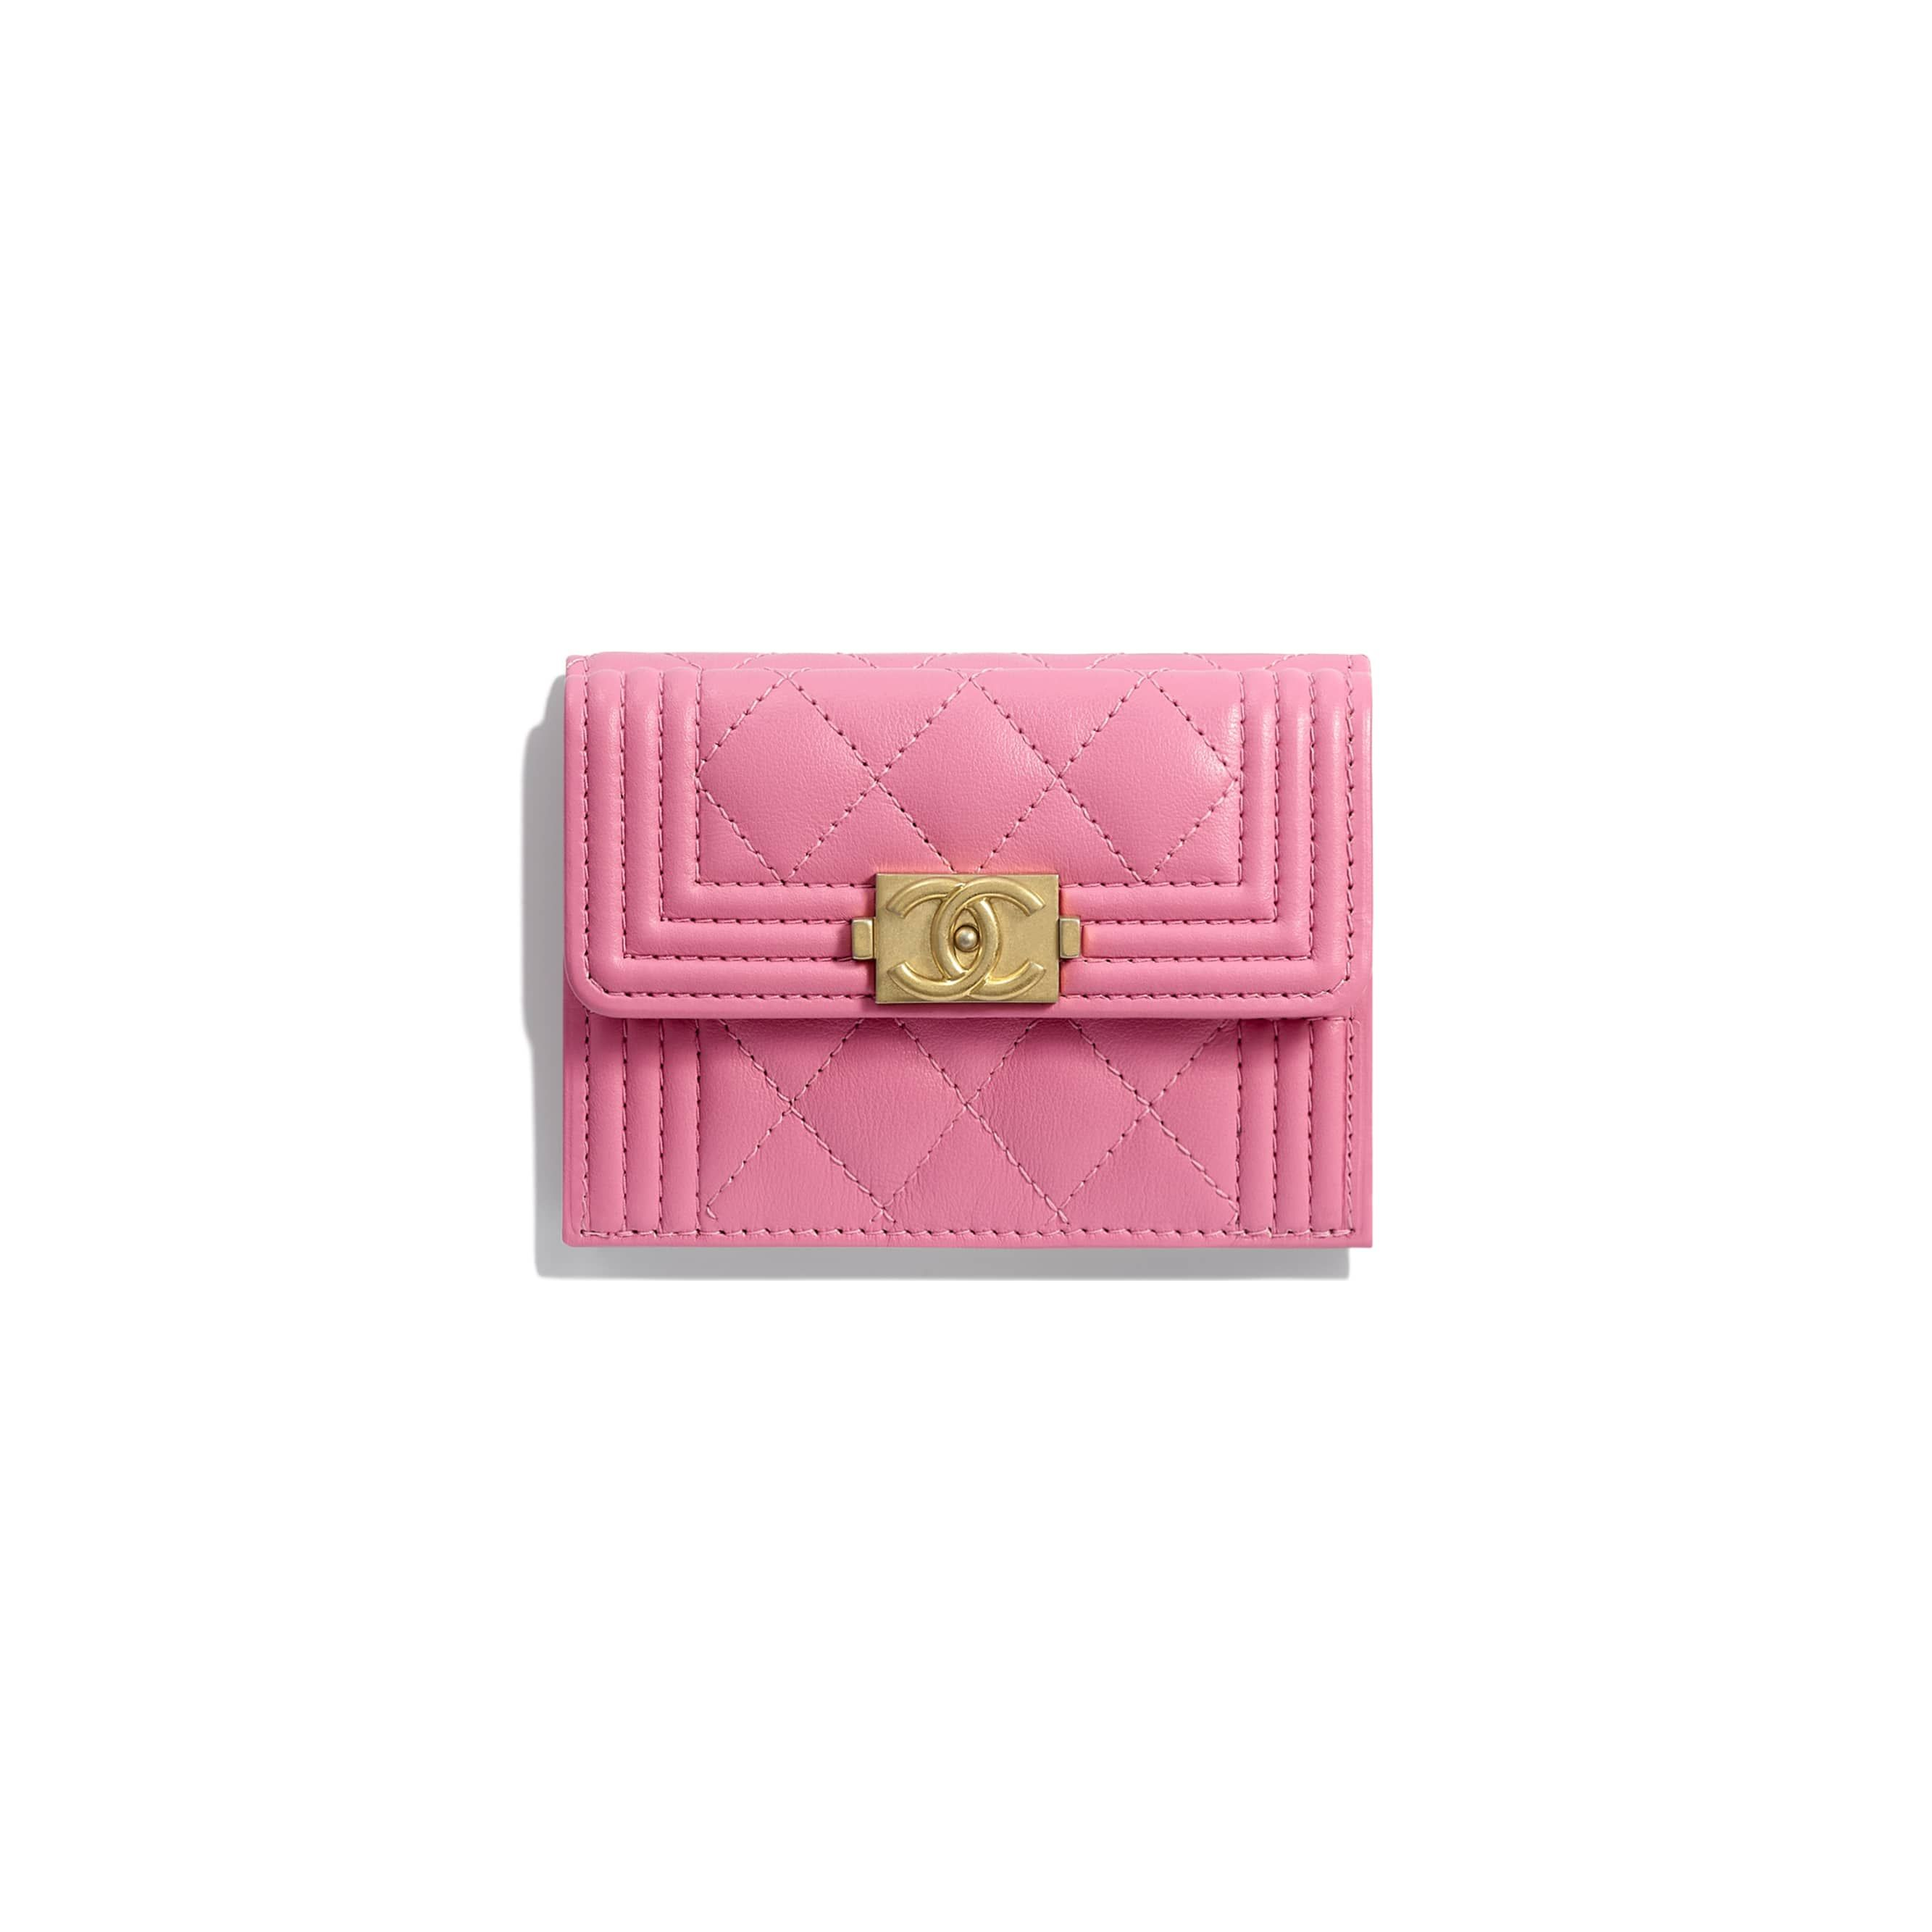 1701c700e4c4 BOY CHANEL Small Flap Wallet - Pink - Calfskin & Gold-Tone Metal - Default  view - see standard sized version